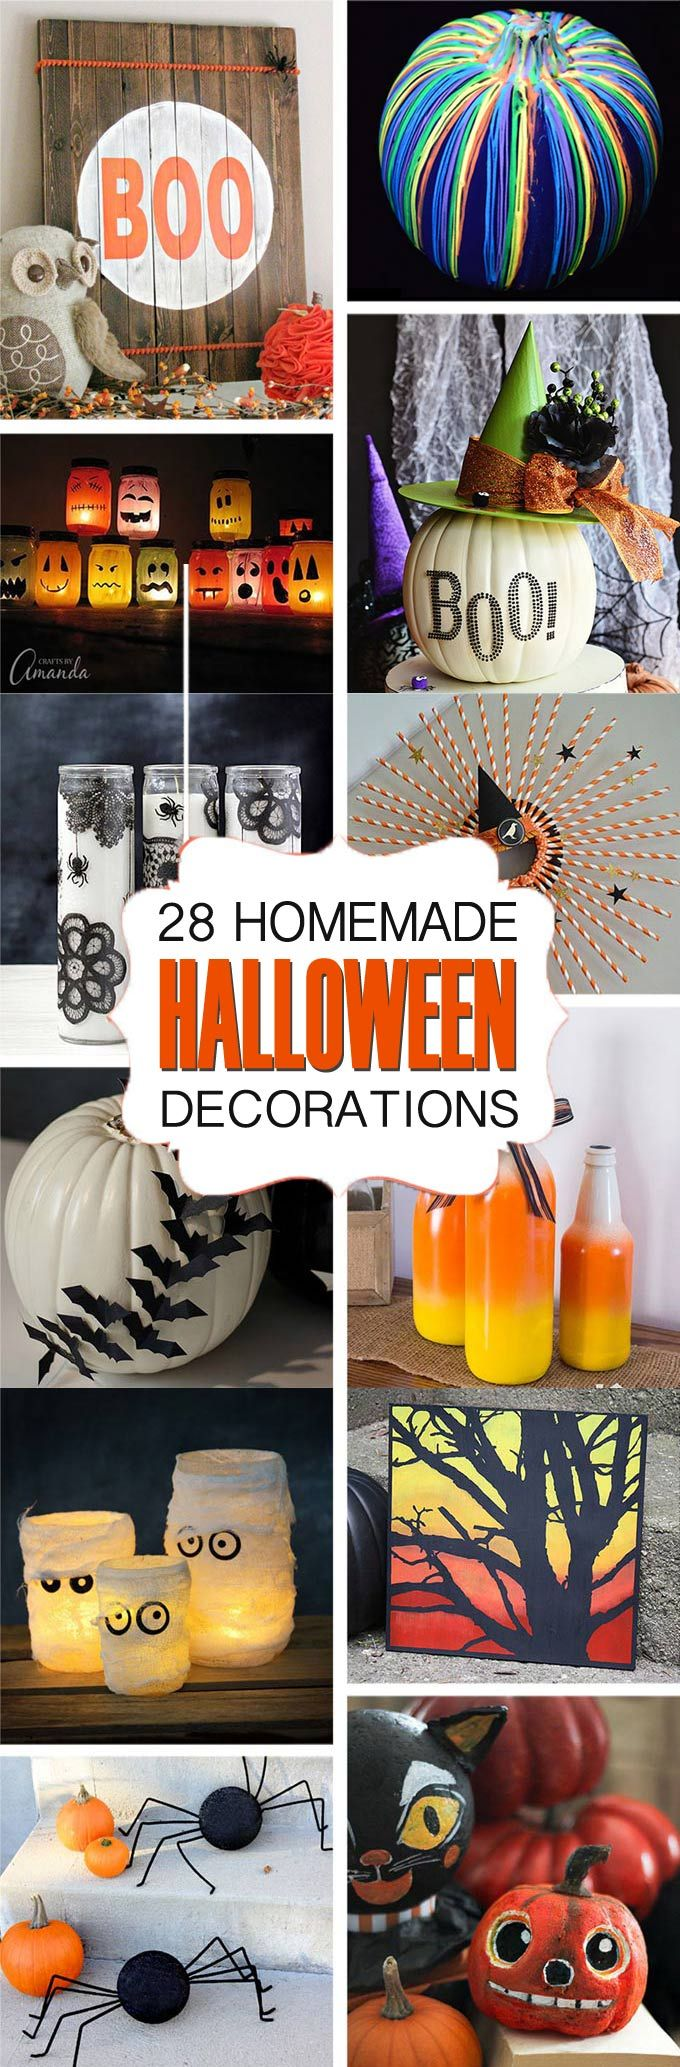 28 Homemade Halloween Decorations If You Are Looking For Crafty Ways To Decorate For Halloween